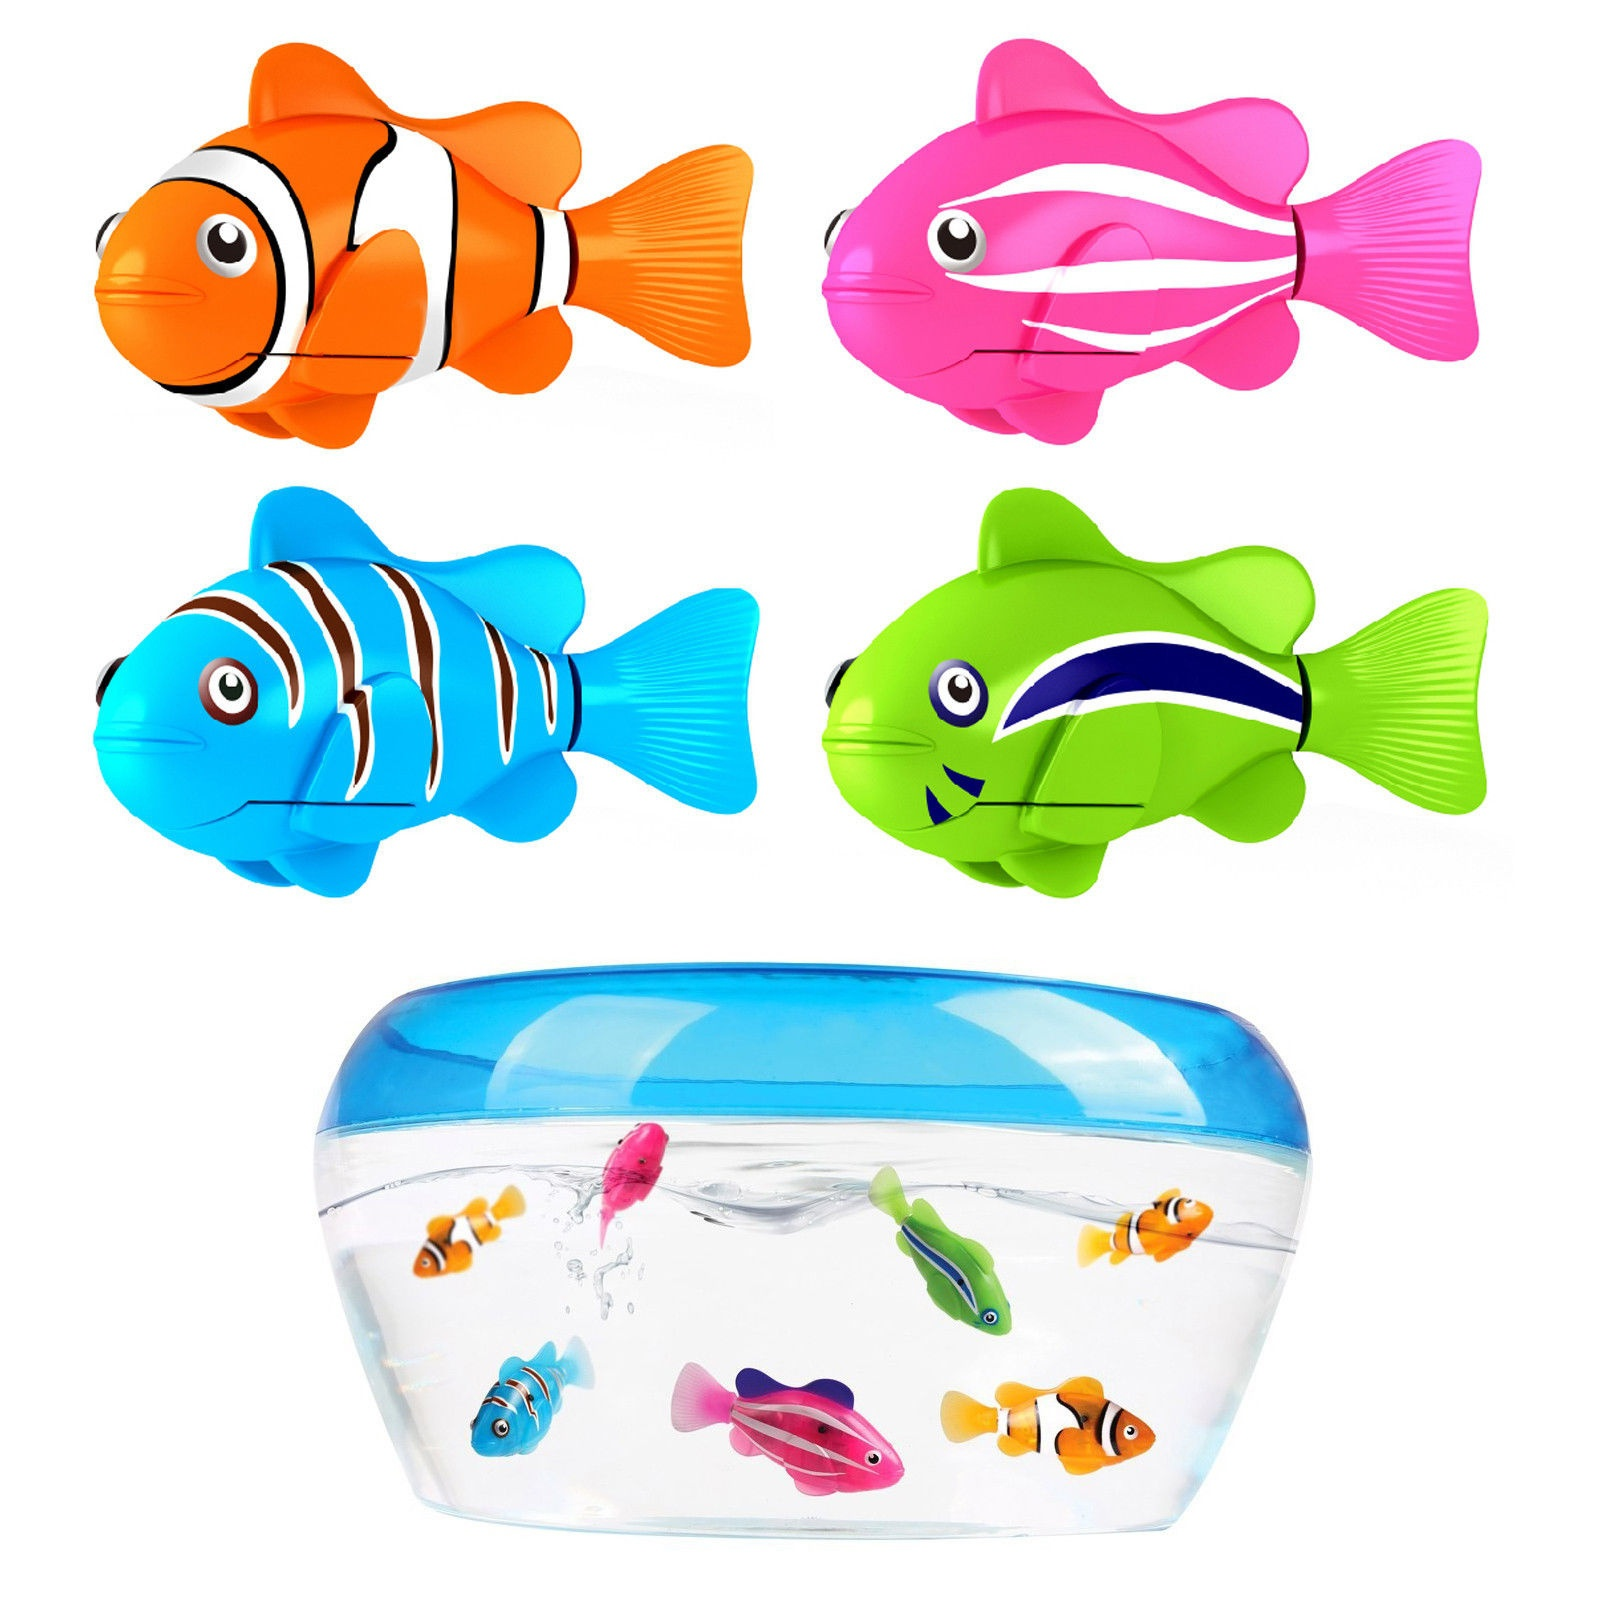 2018 New Funny Toy Clownfish Nemo Robo Robotic Fish Water Activated Kids Boys Girls Toy 88 цена